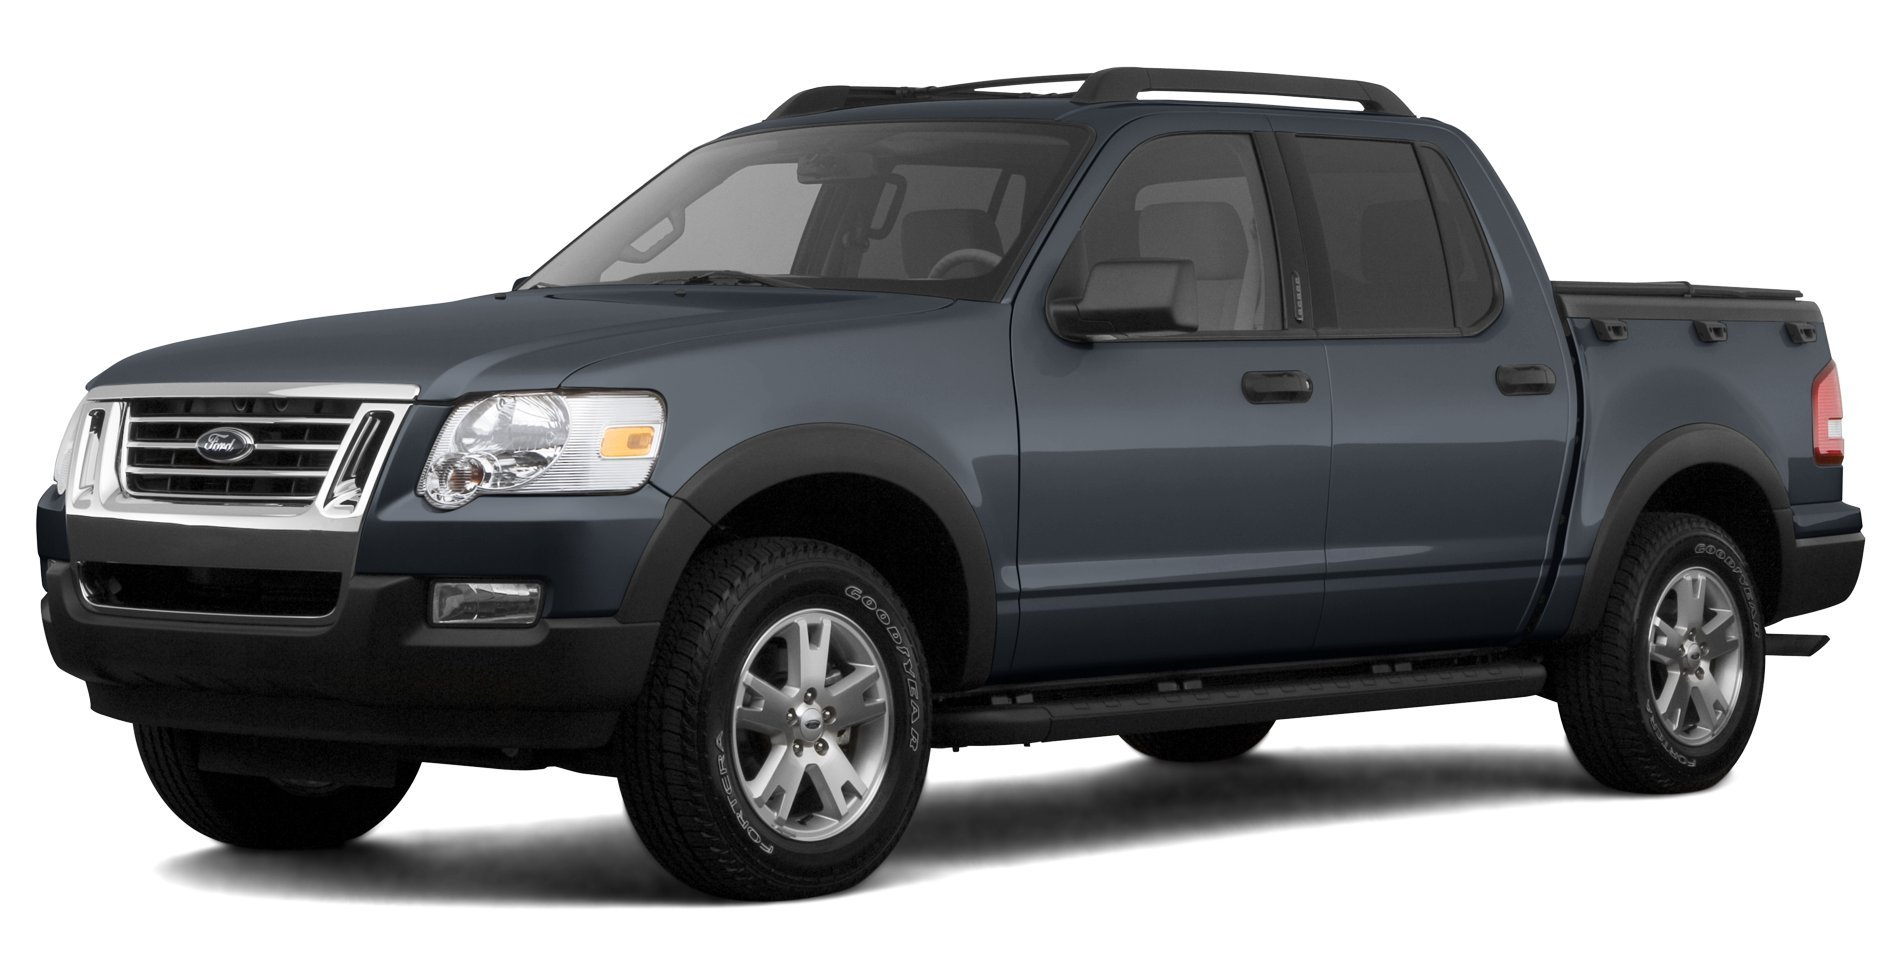 ... 2007 Ford Explorer Sport Trac XLT, 2-Wheel Drive 4-Door V8 ...